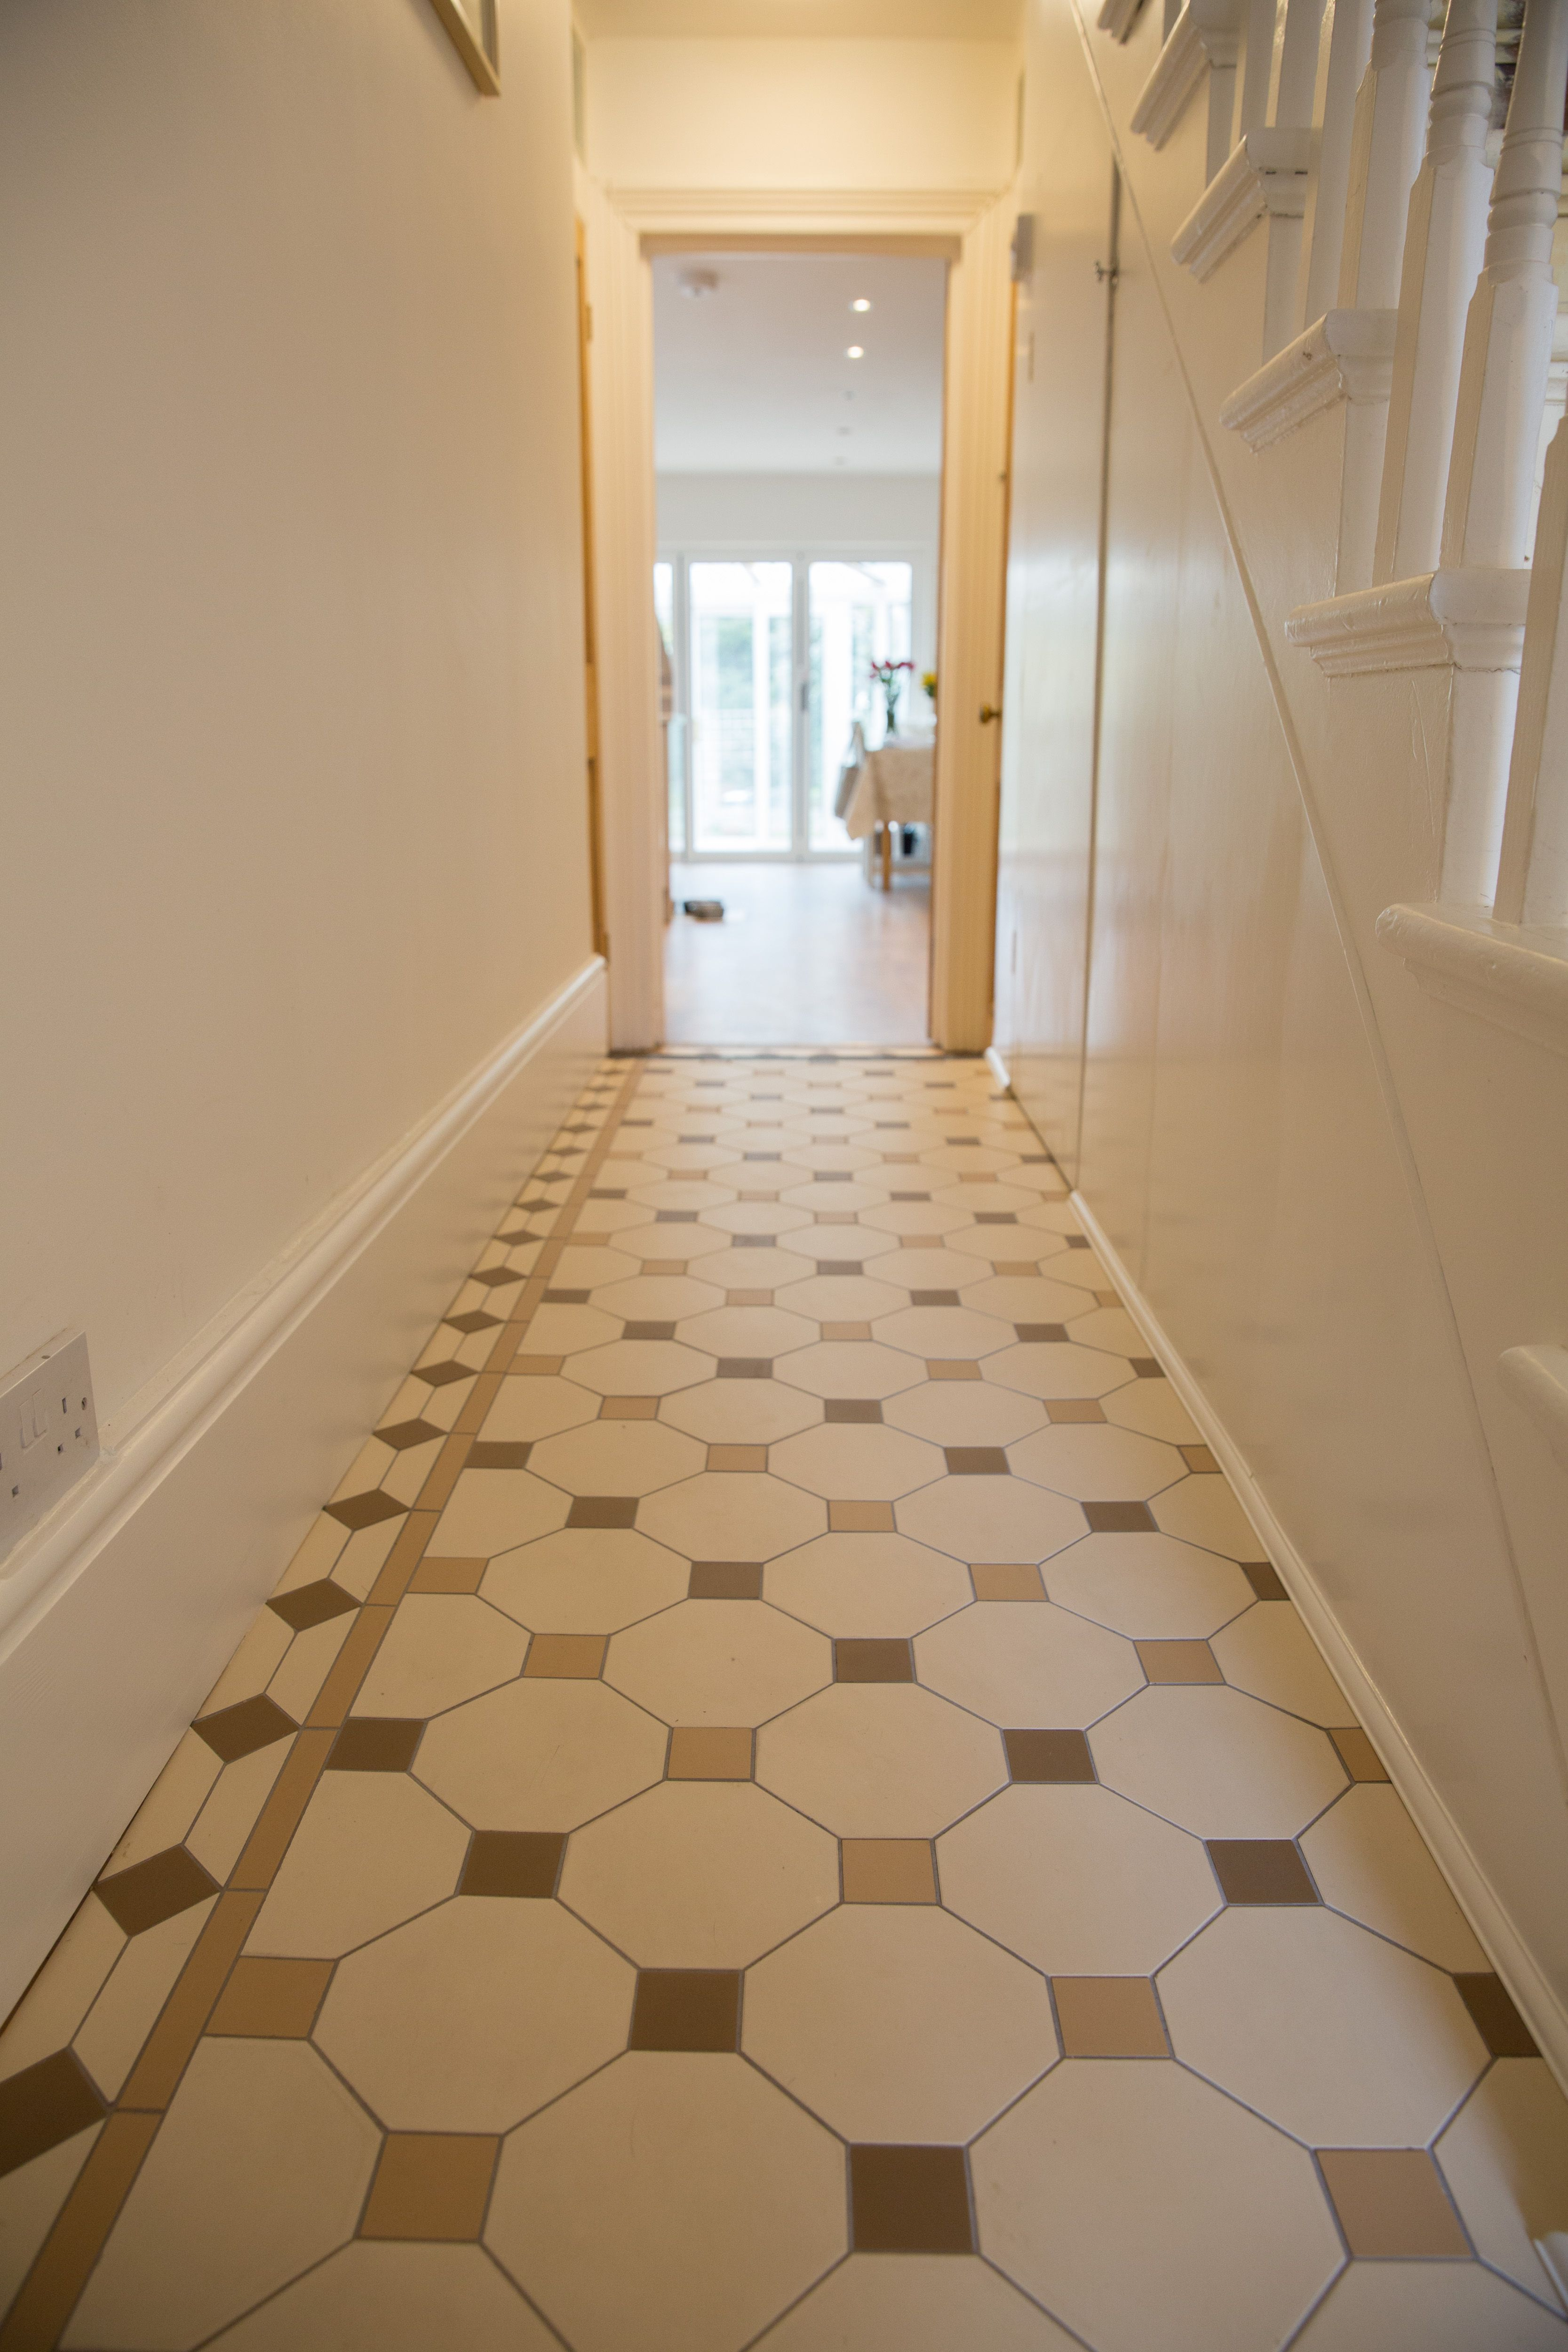 The Nottingham Pattrn Victorian Floor Tiles By Original Style Uk Tile Floor Victorian Tiles Geometric Tile Pattern